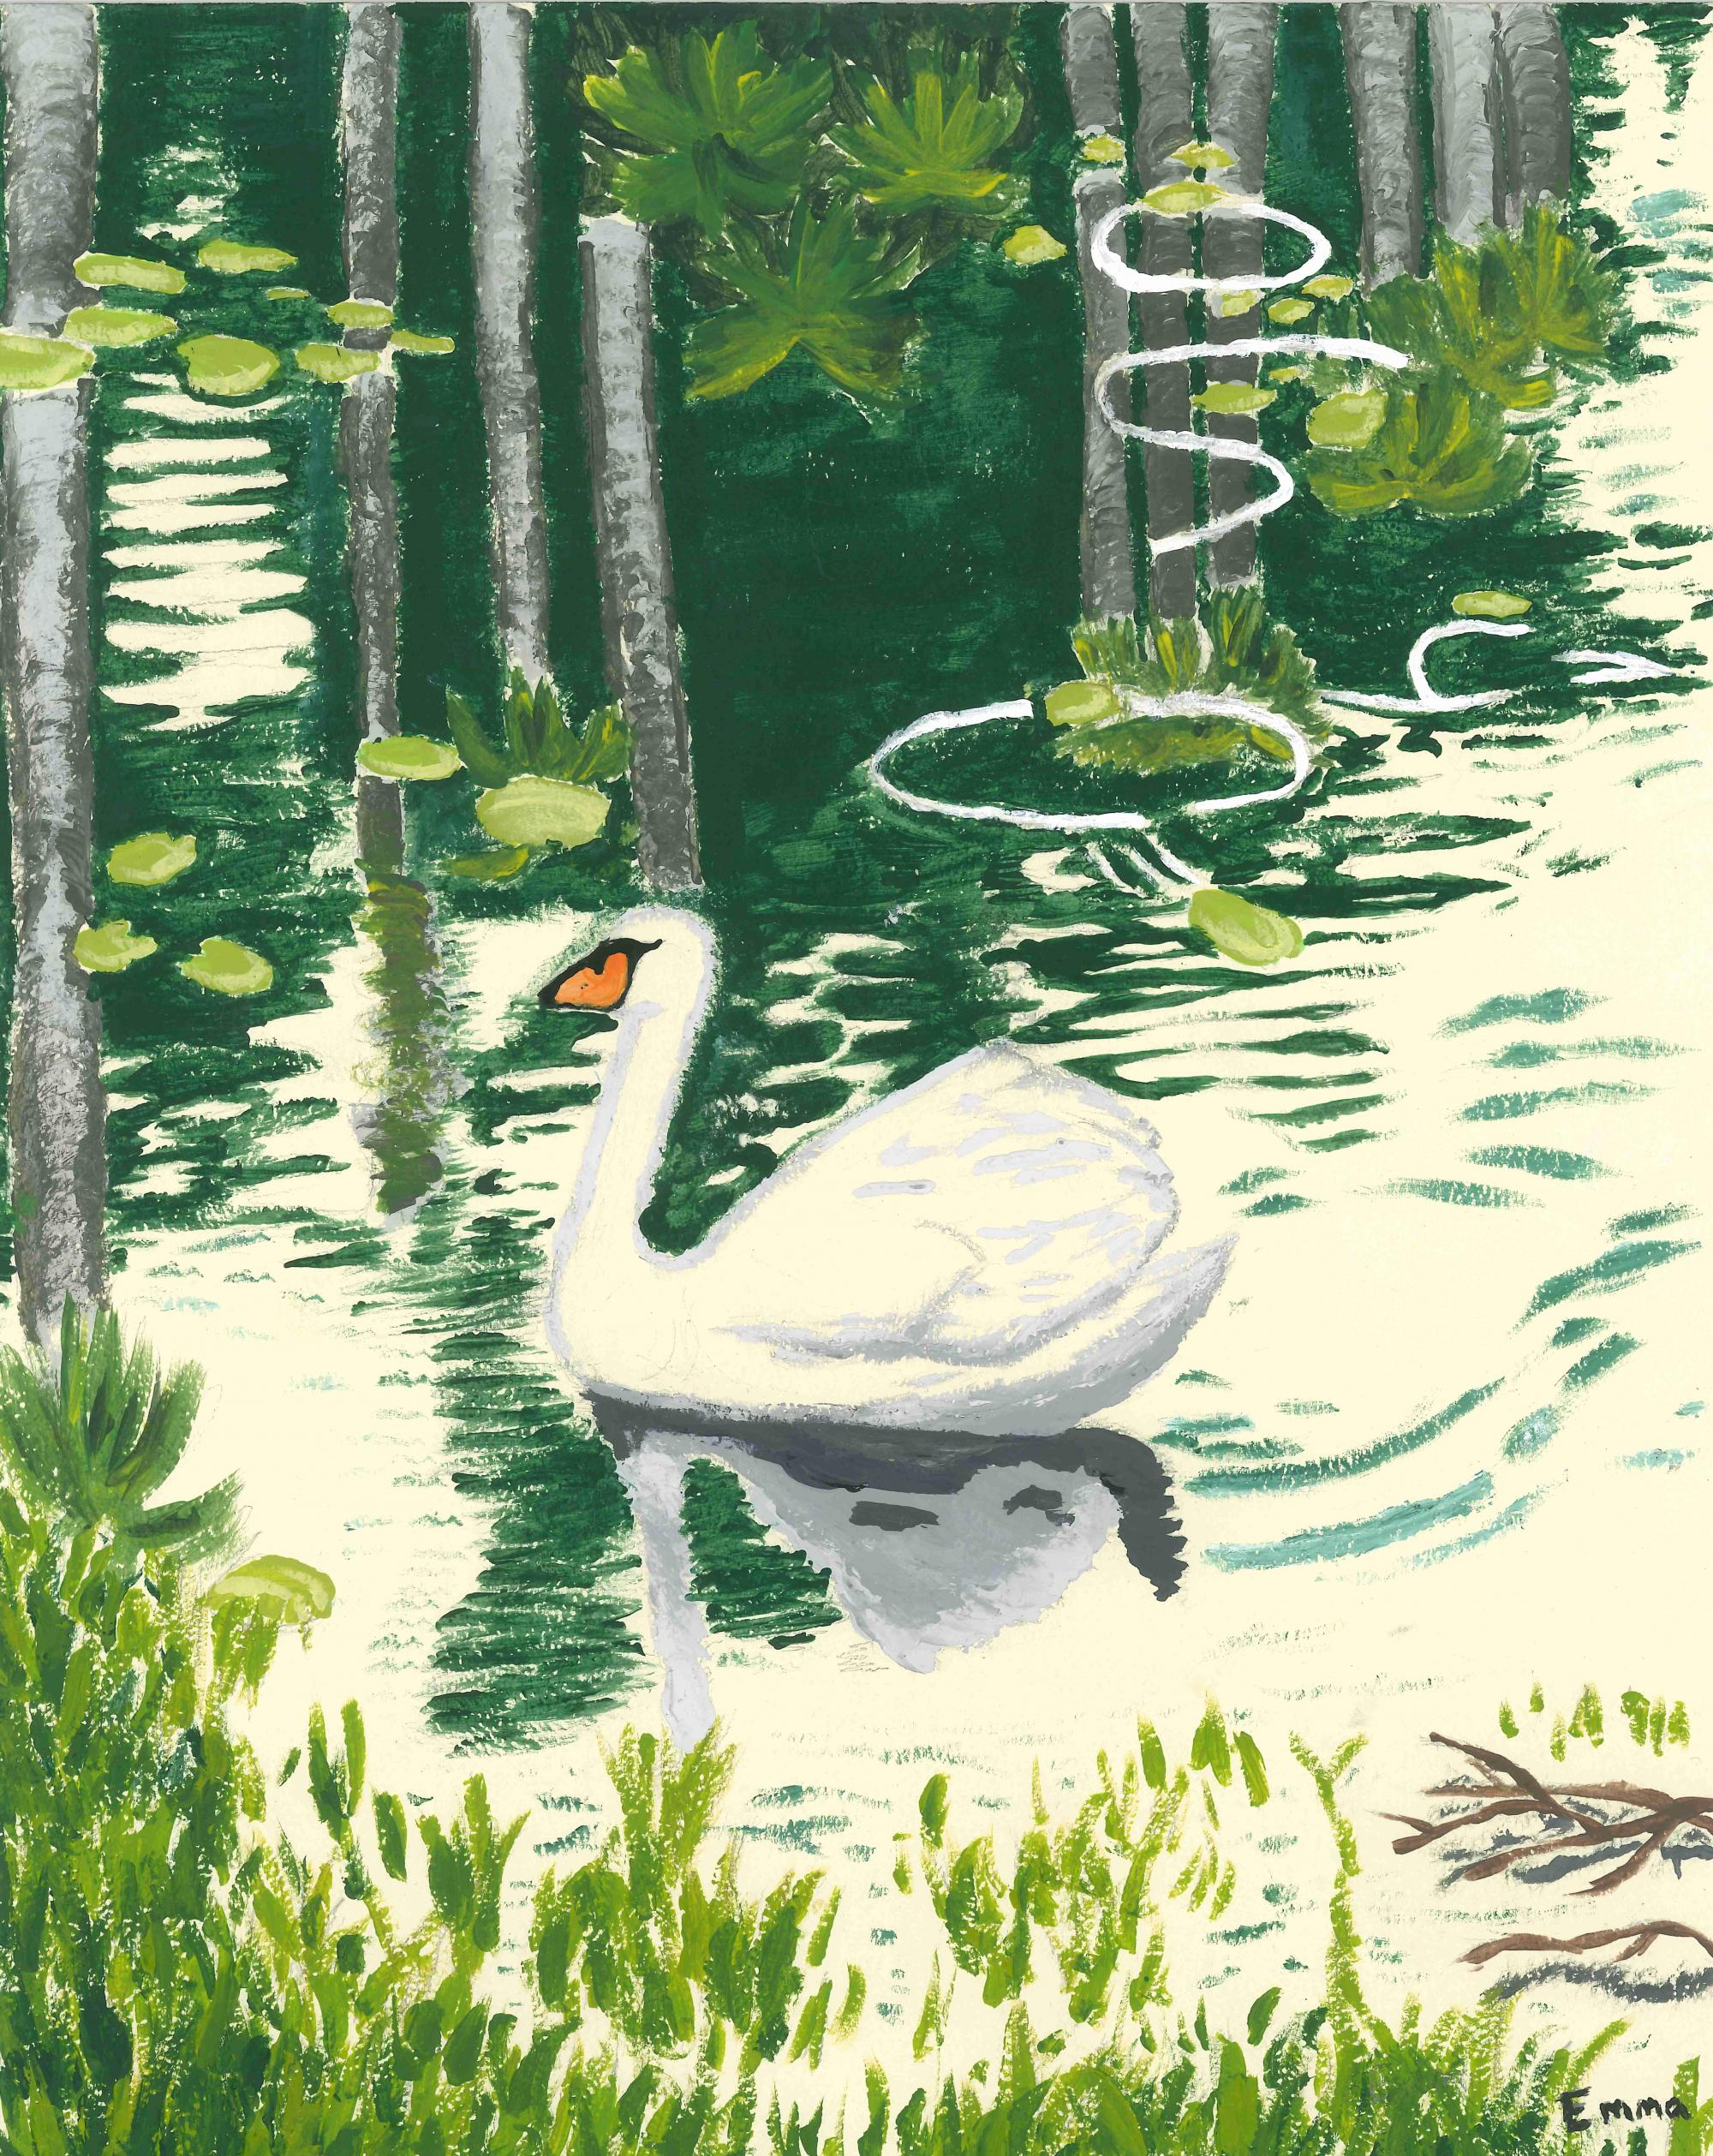 """Swan"" Emma Mosley, age 13. Conyers, Georgia. United States. General Ray Davis Middle School. Teacher: Katy King. River of Words 2018 Finalist."